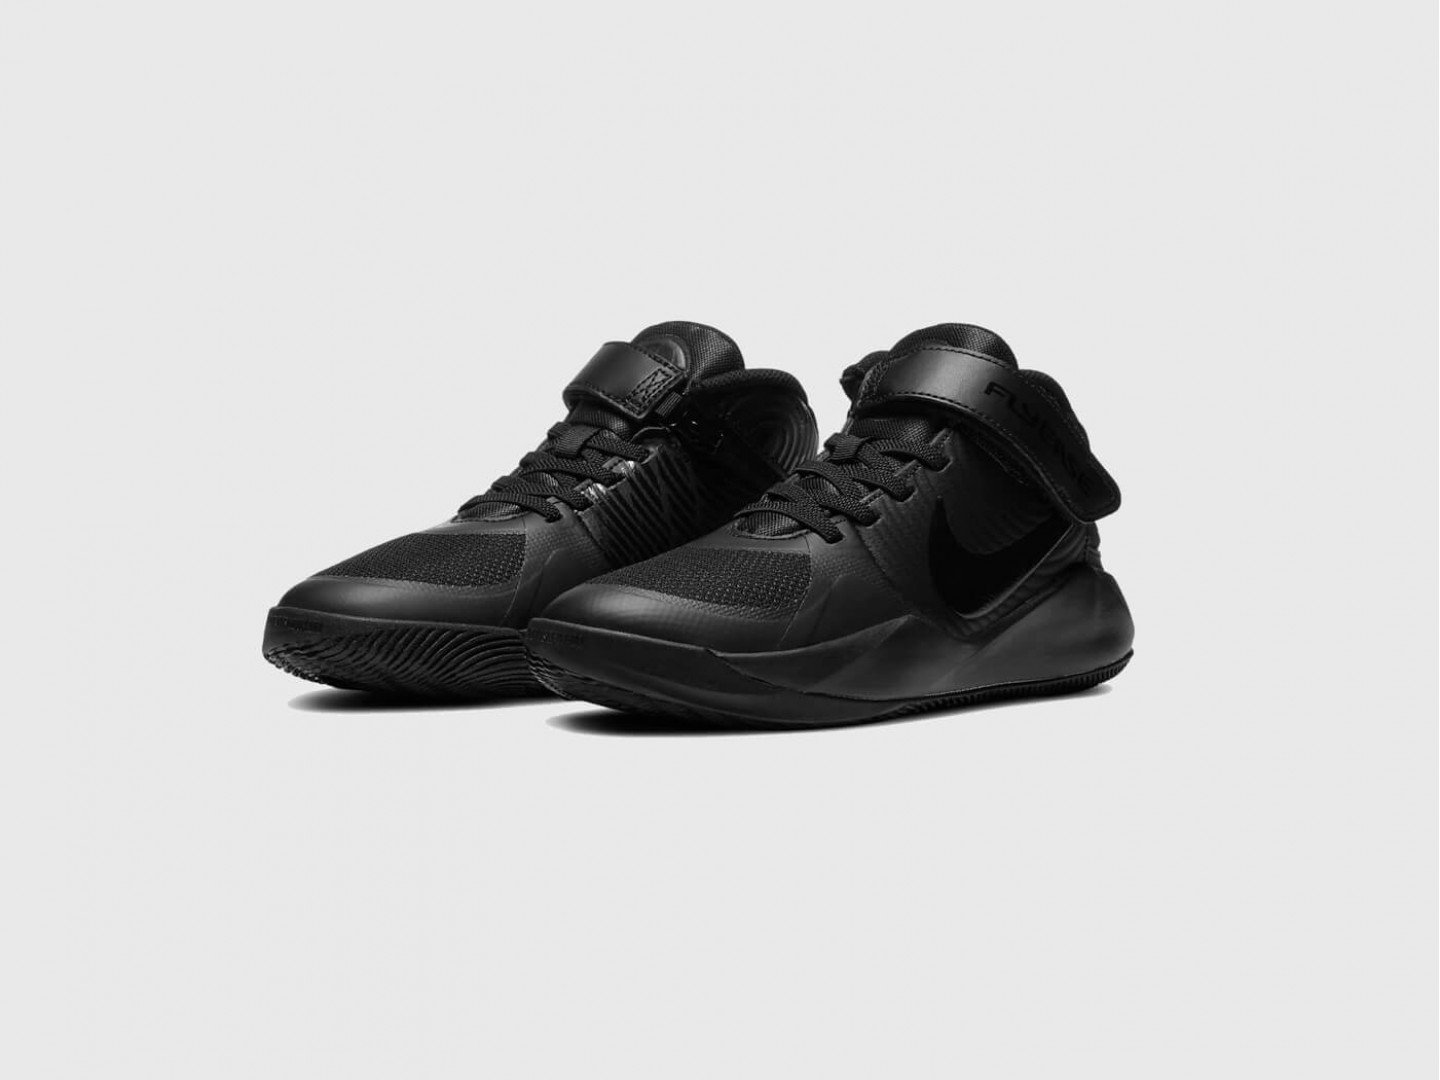 Кроссовки Nike Team Hustle D 9 FlyEase / black